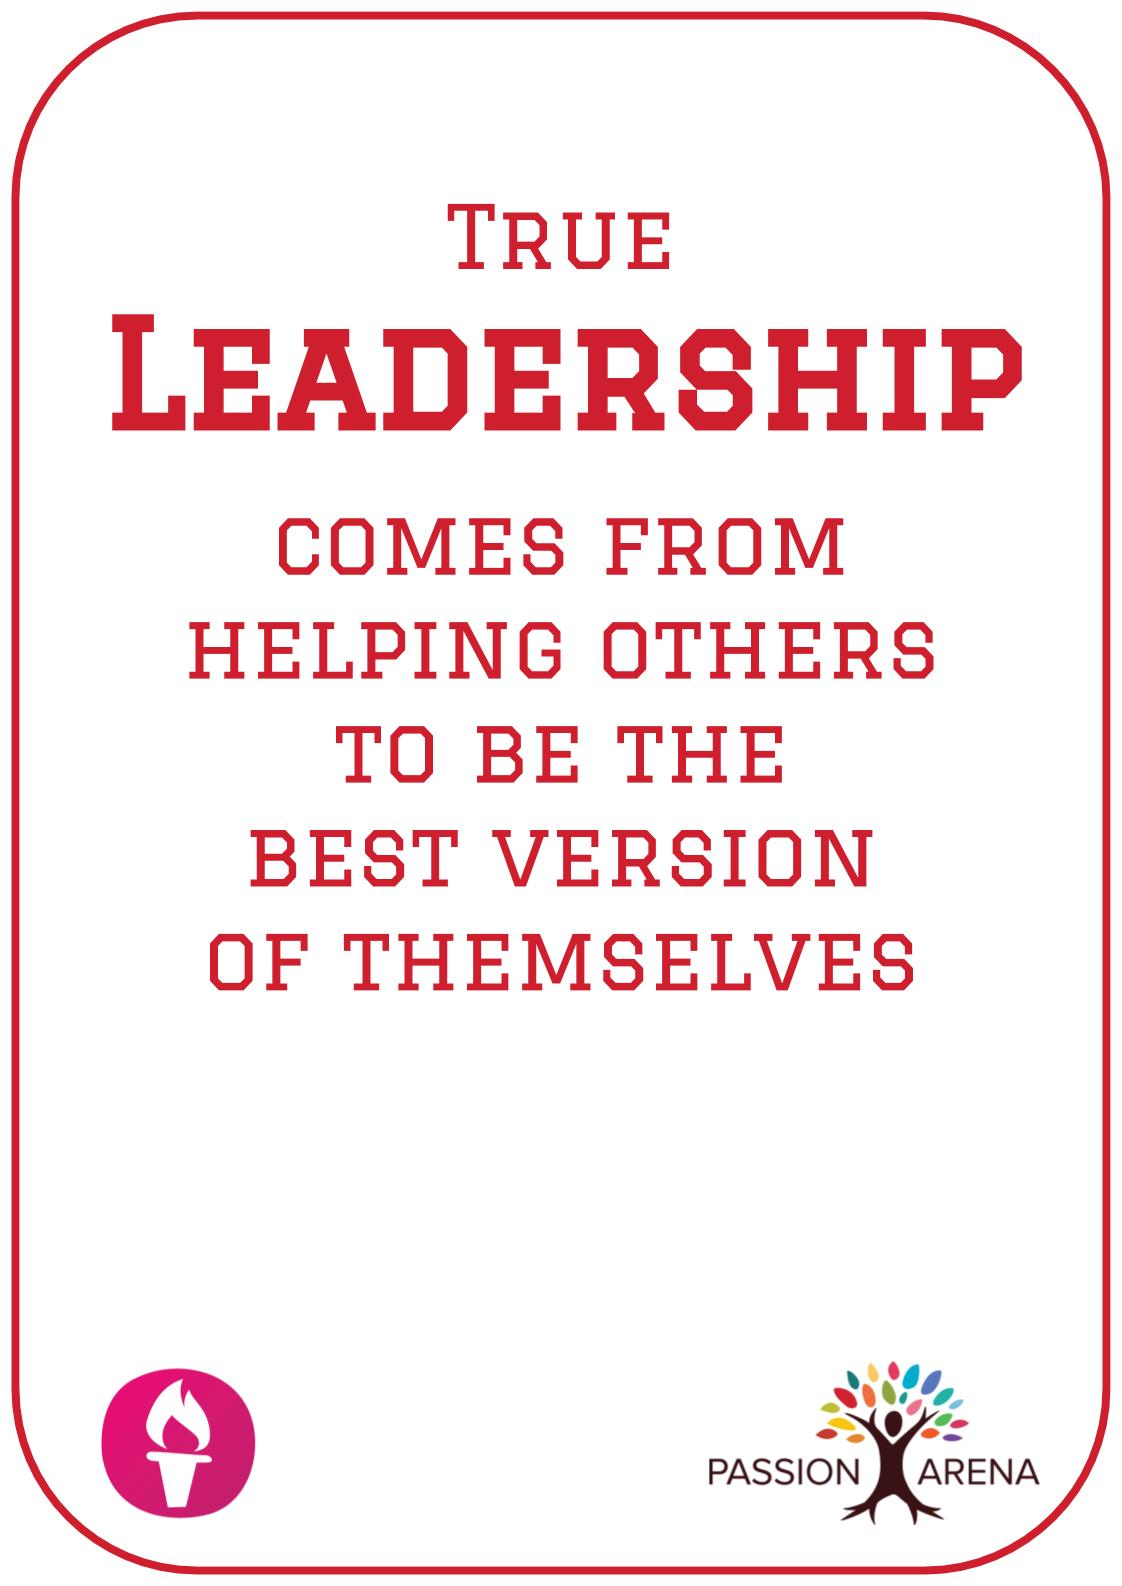 Intro-3-40. What does it mean to be a leader?